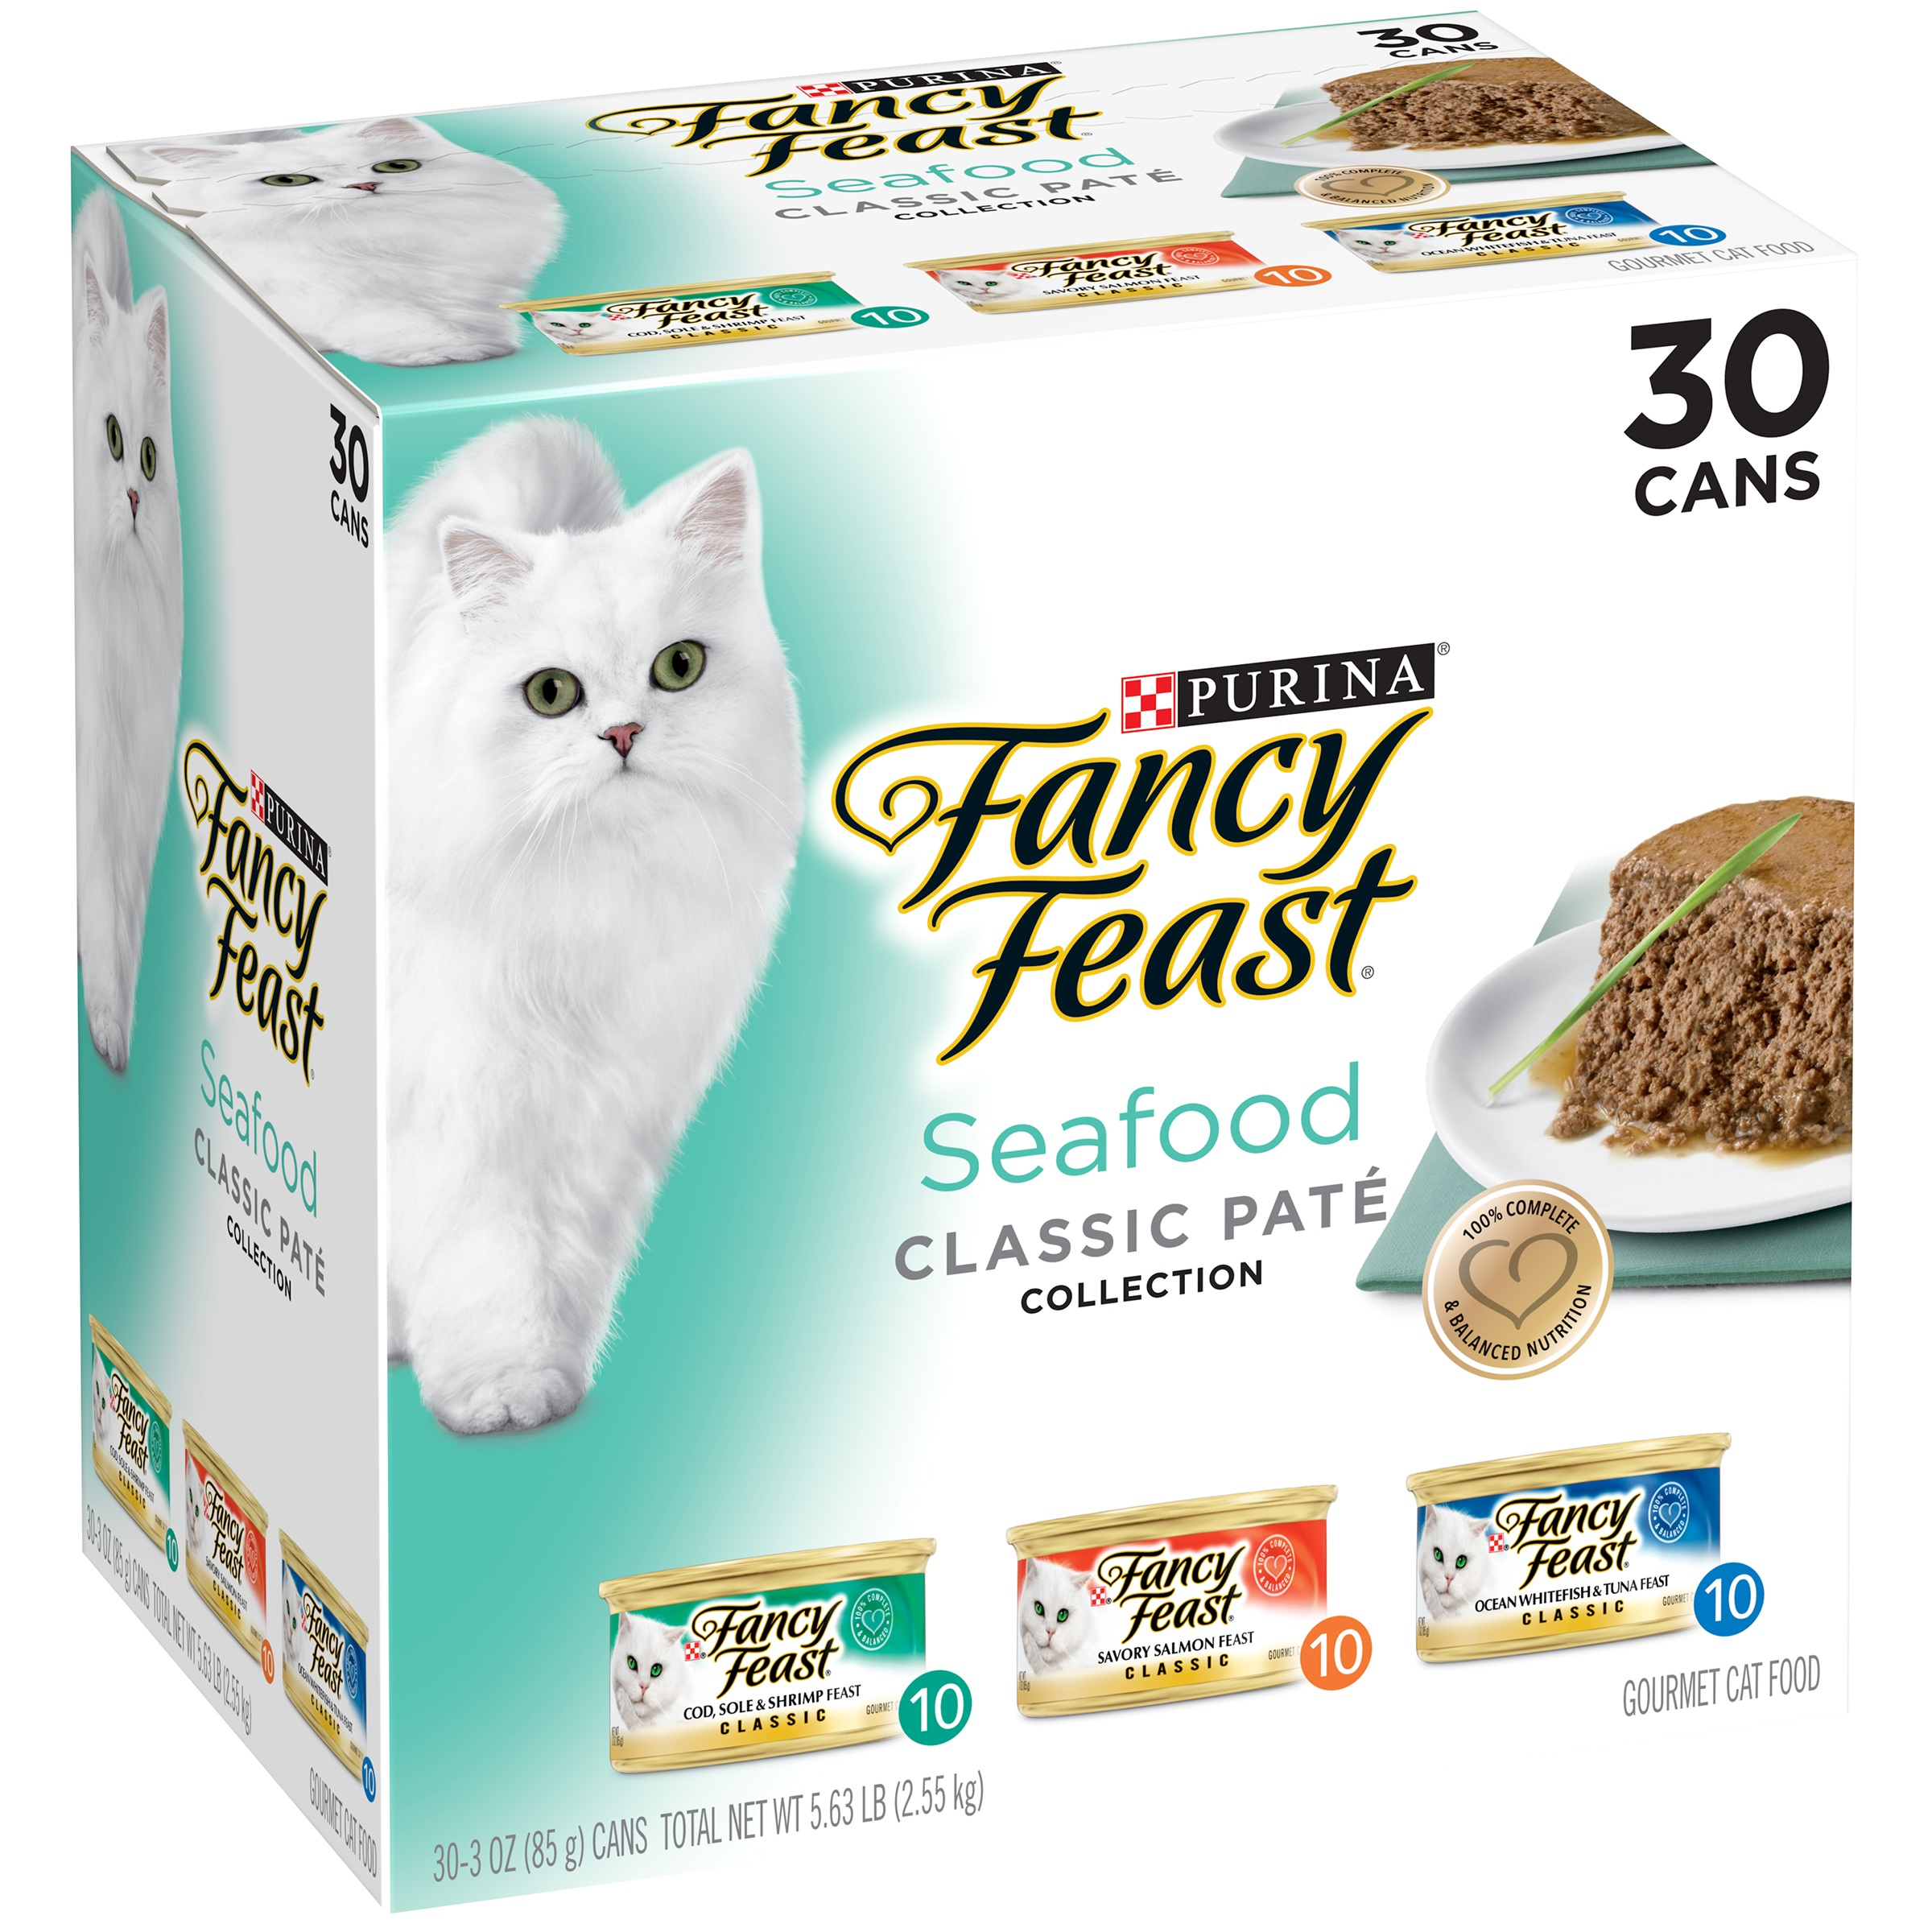 Purina Fancy Feast Classic Seafood Feast Collection Cat Food 30-3 oz. Cans